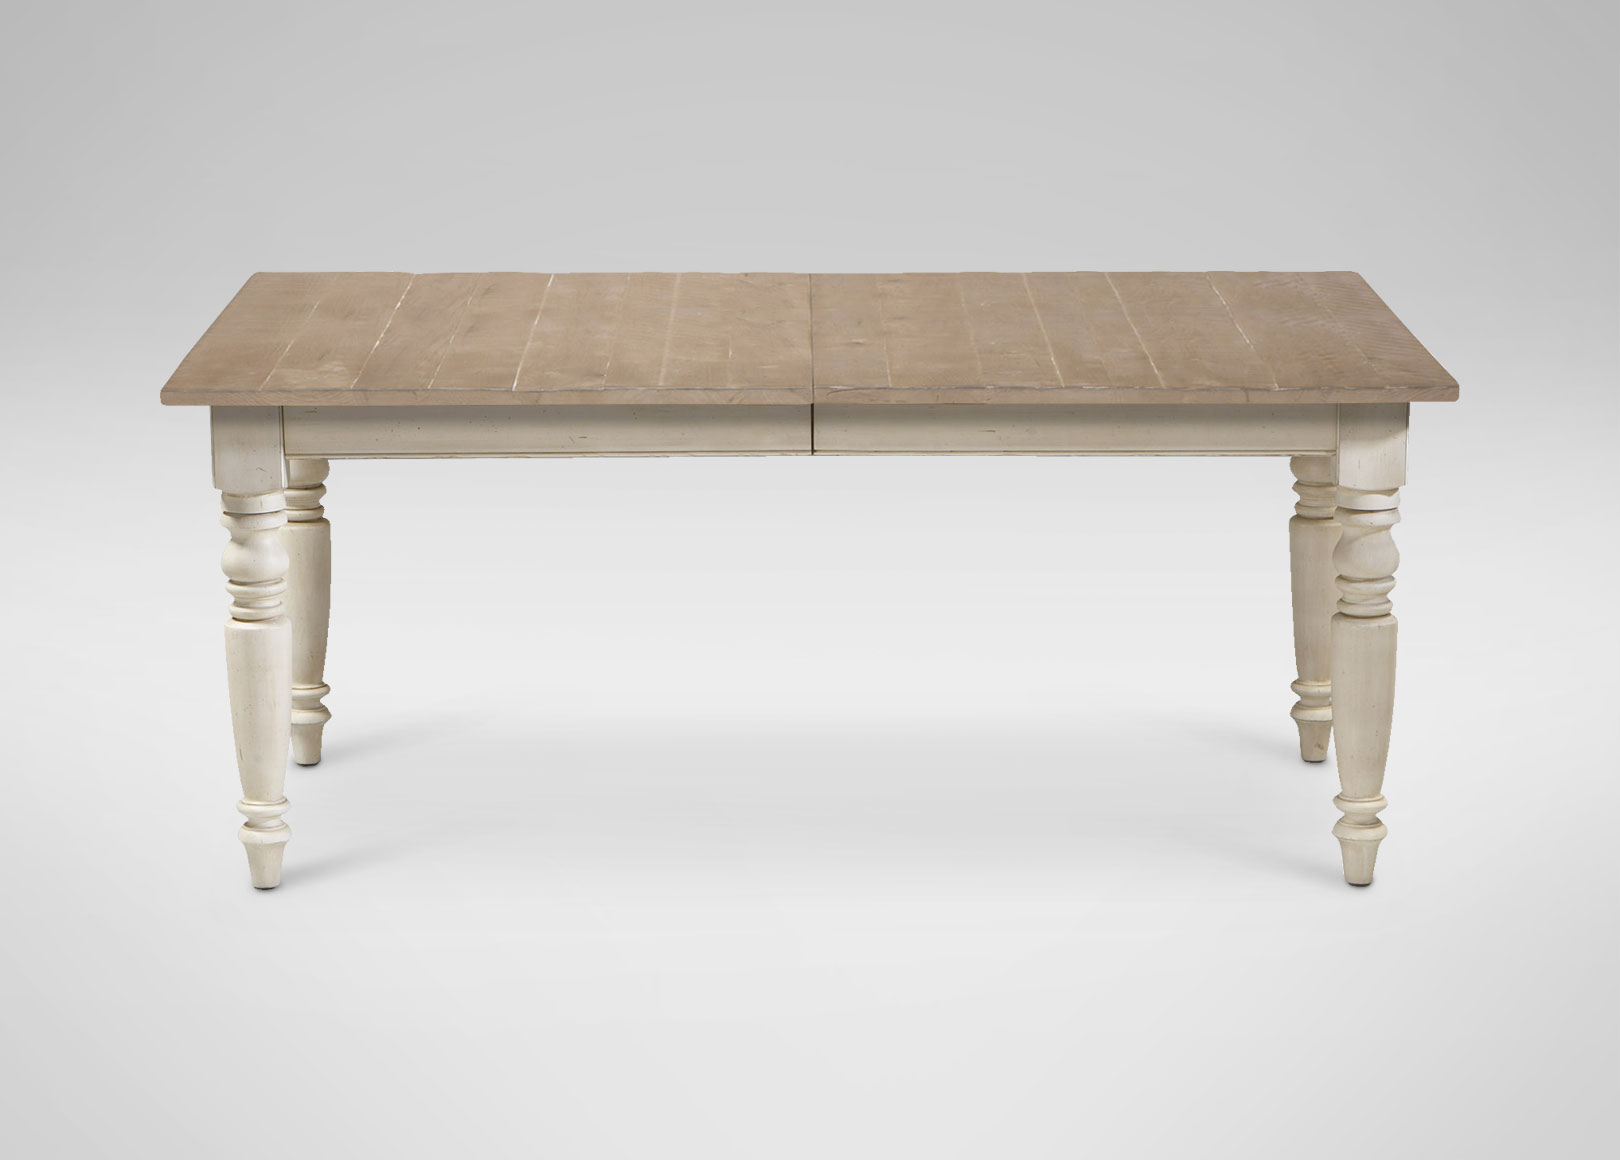 rustic dining tables images miller rustic dining table , , large_gray NUMEFDI